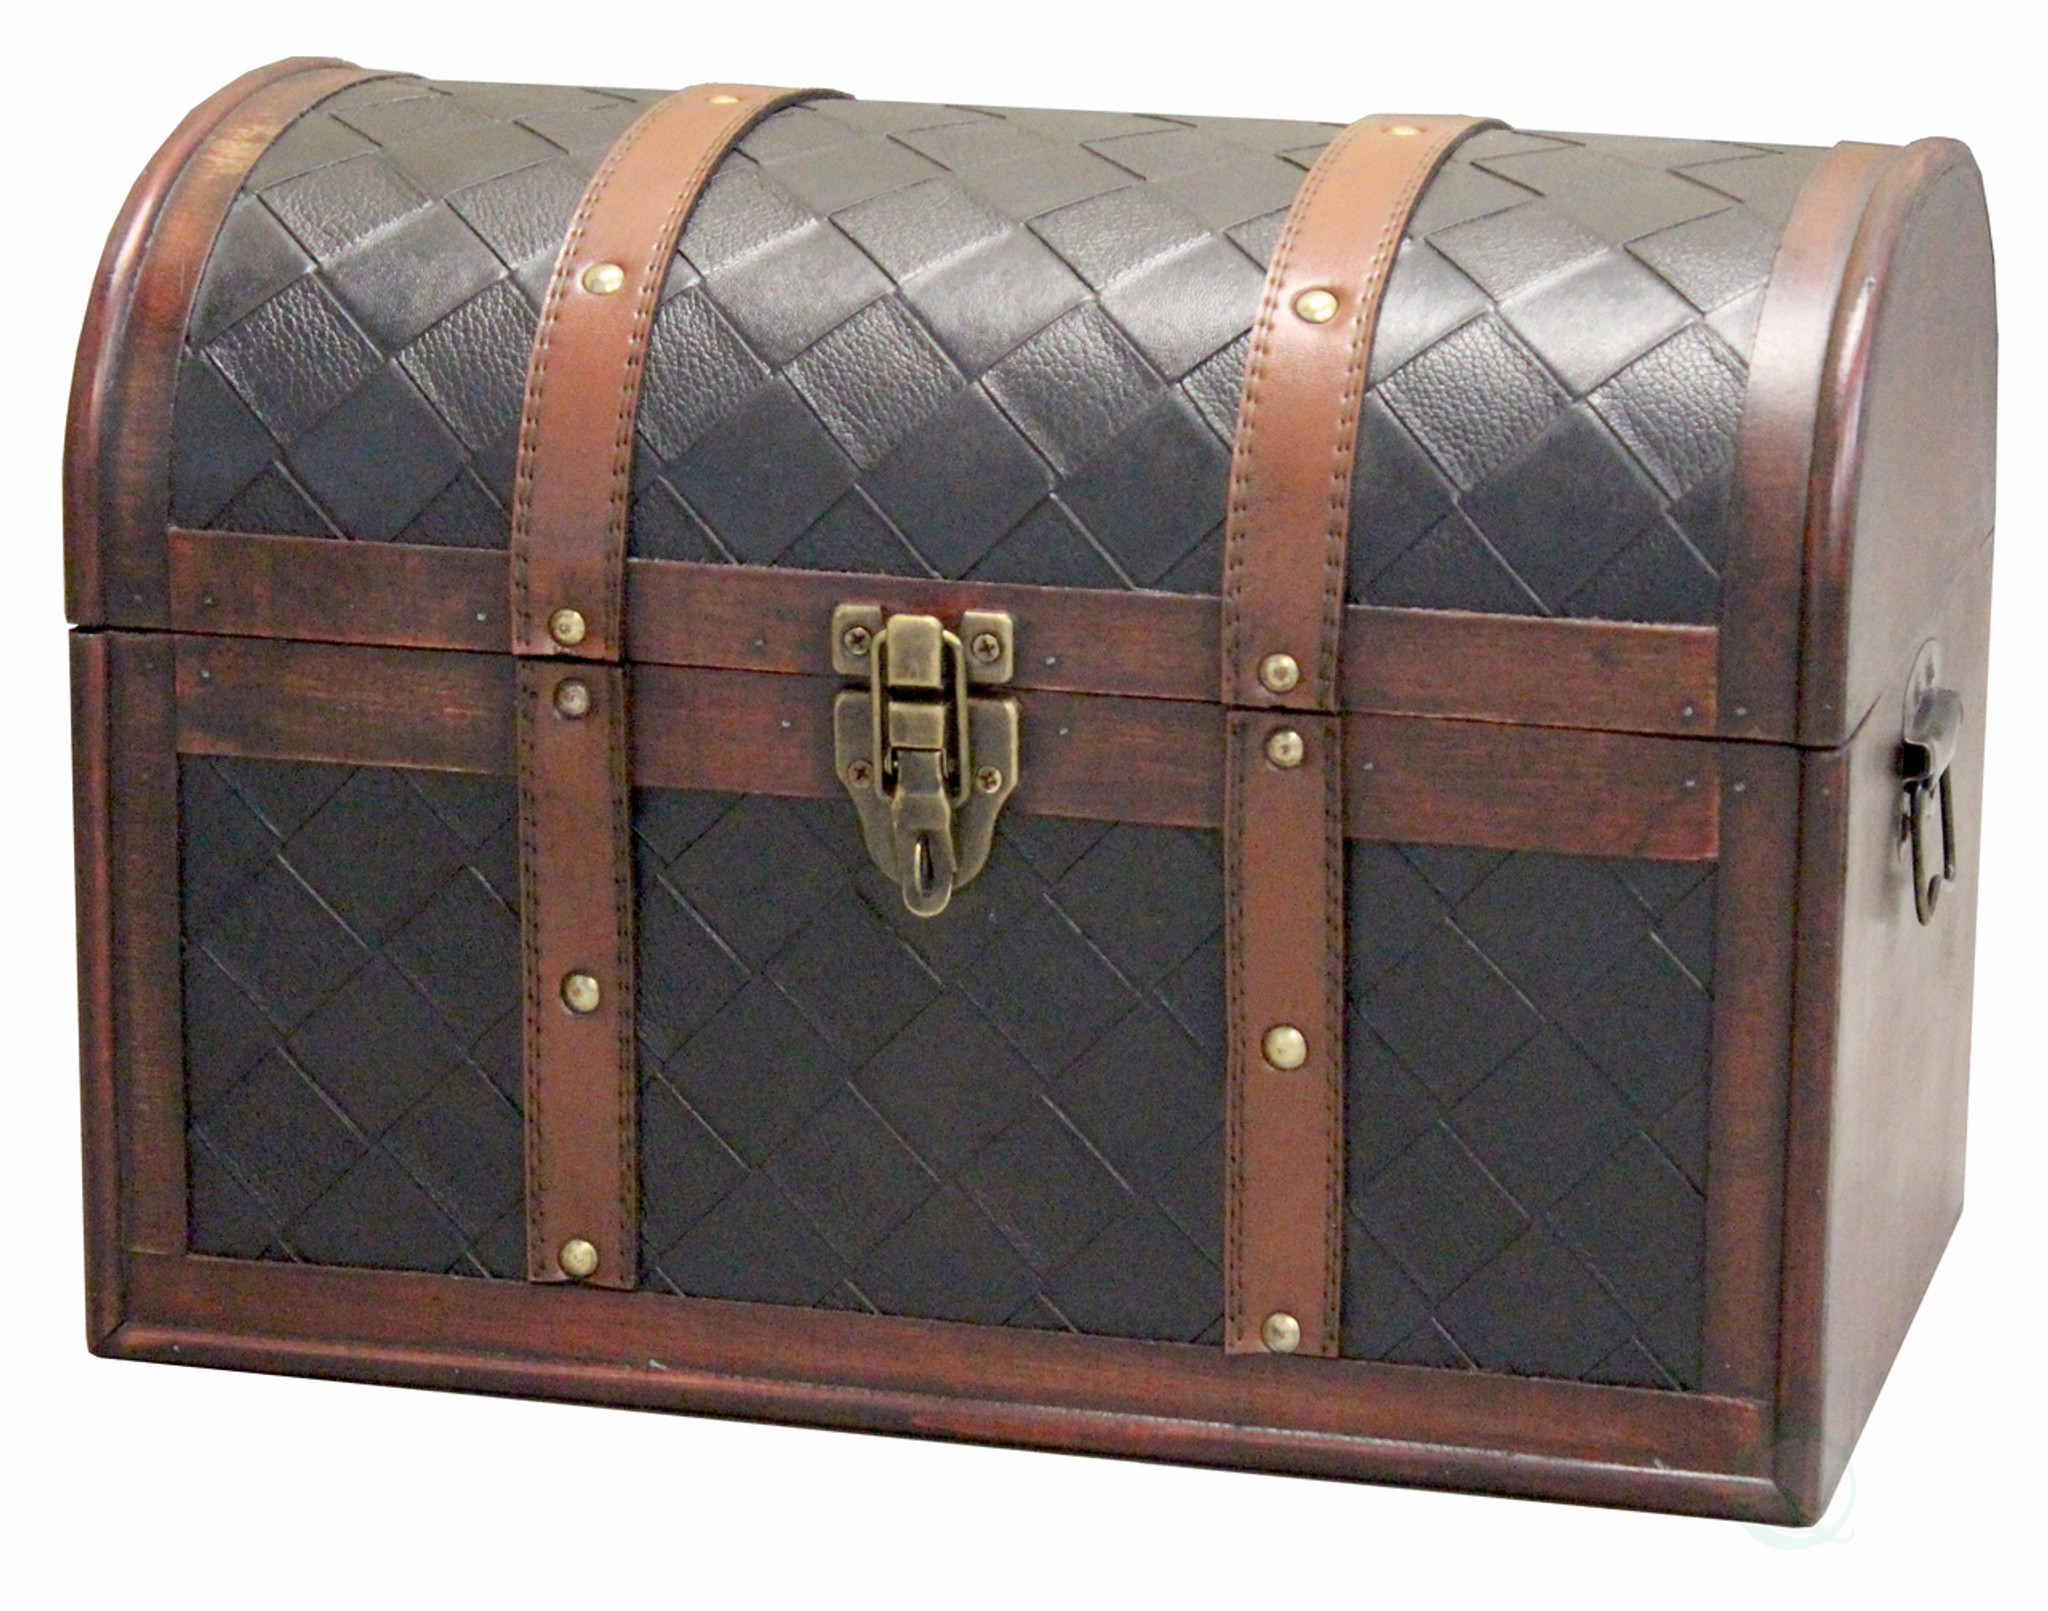 saveenlarge chests galery p set type majestic listitdallas decorative and of storage liner trunk ocean s wooden decor trunks